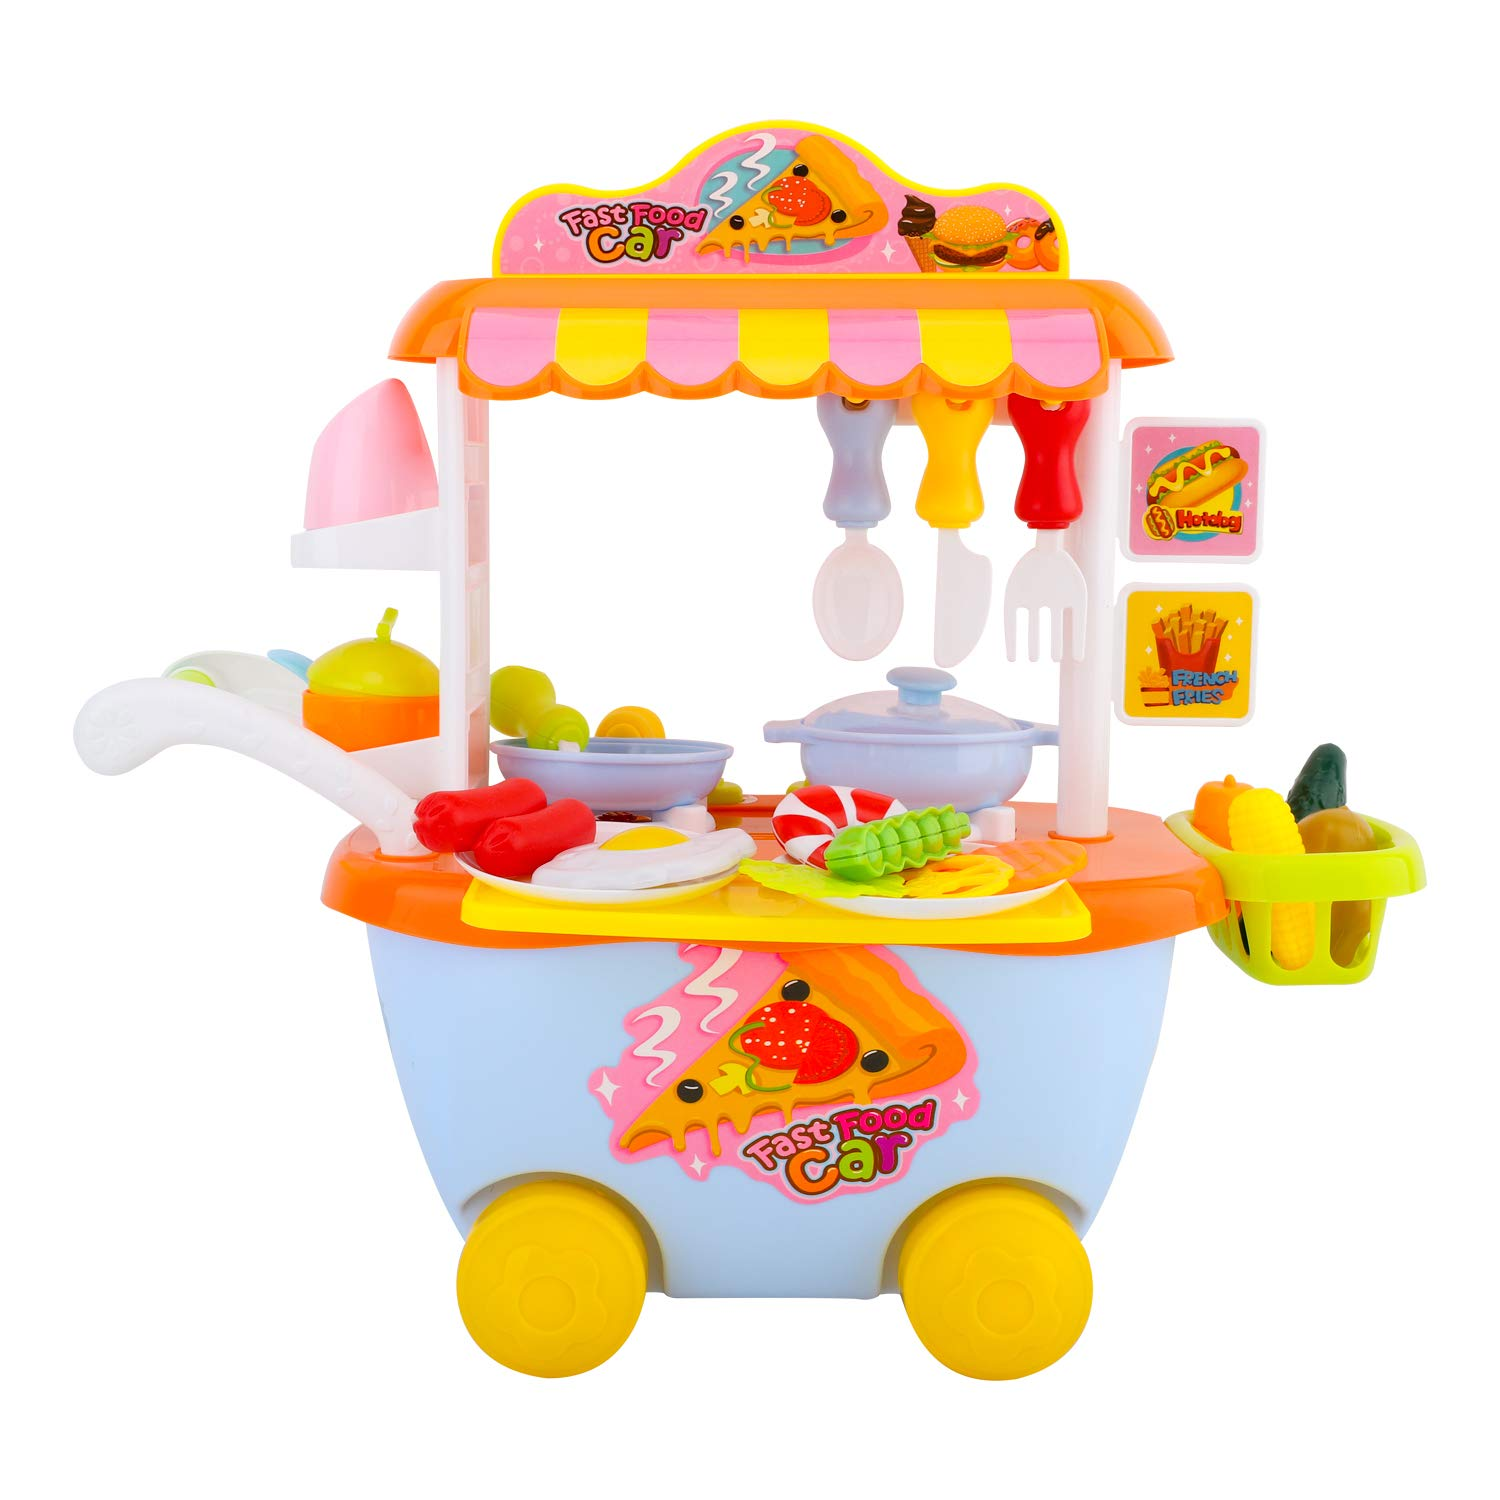 Amazon Com Zooawa Fast Food Truck Play Set With Cooking Sound 34 Pcs Kids Food Play Bus With Food And Dishes Supermarket Trolley Cart Toys Kitchen Pretend Play Toy Set For Toddlers Colorful